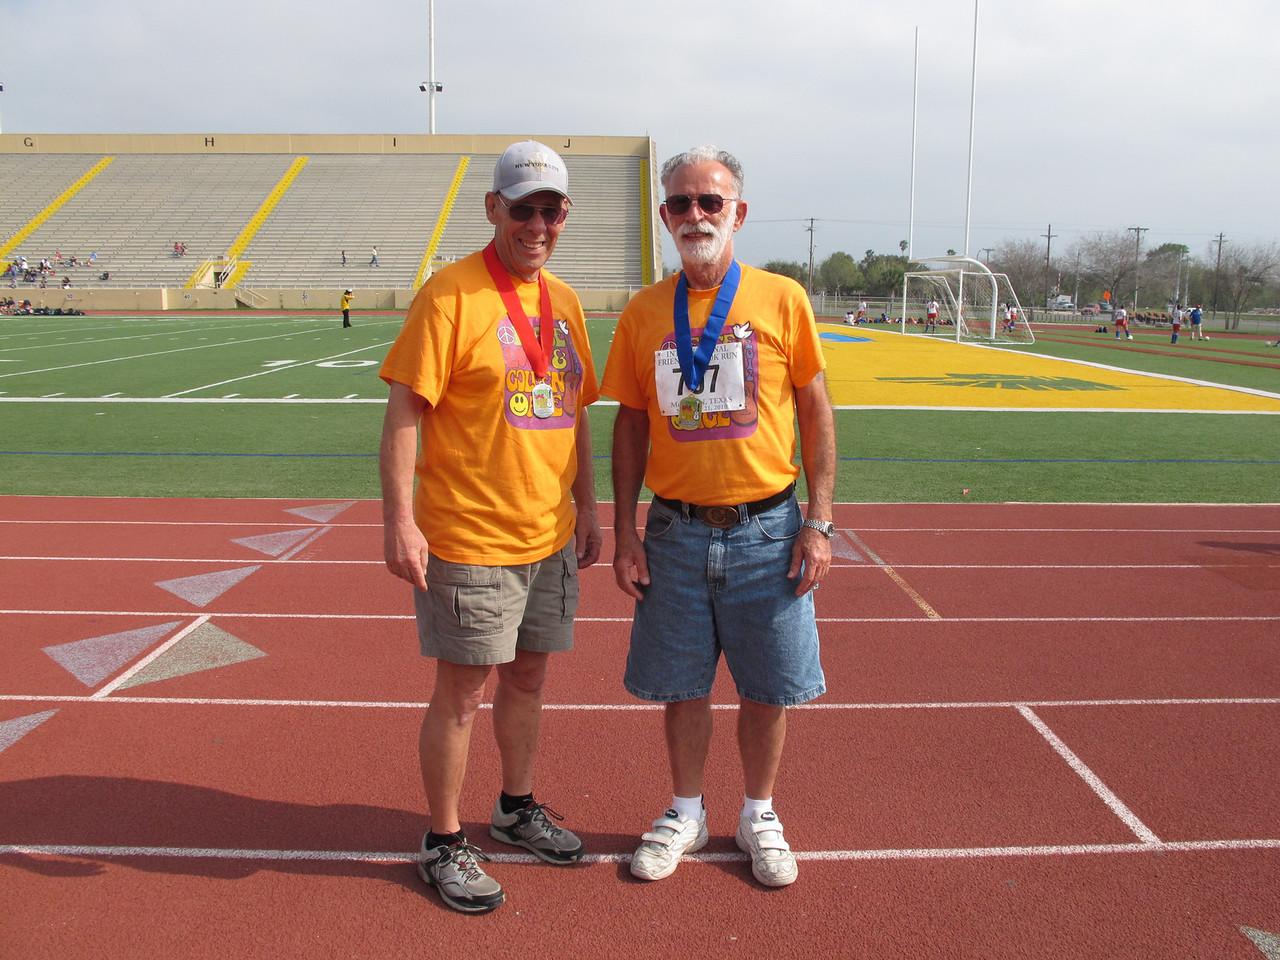 Racewalk Men 70-74 (L-R) 2nd Place - Art Cook (Snow to Sun), 1st Place - Cliff DeWitt (Holiday Village), 3rd Place - Not Pictured - Joseph Pantely (Snow to Sun)